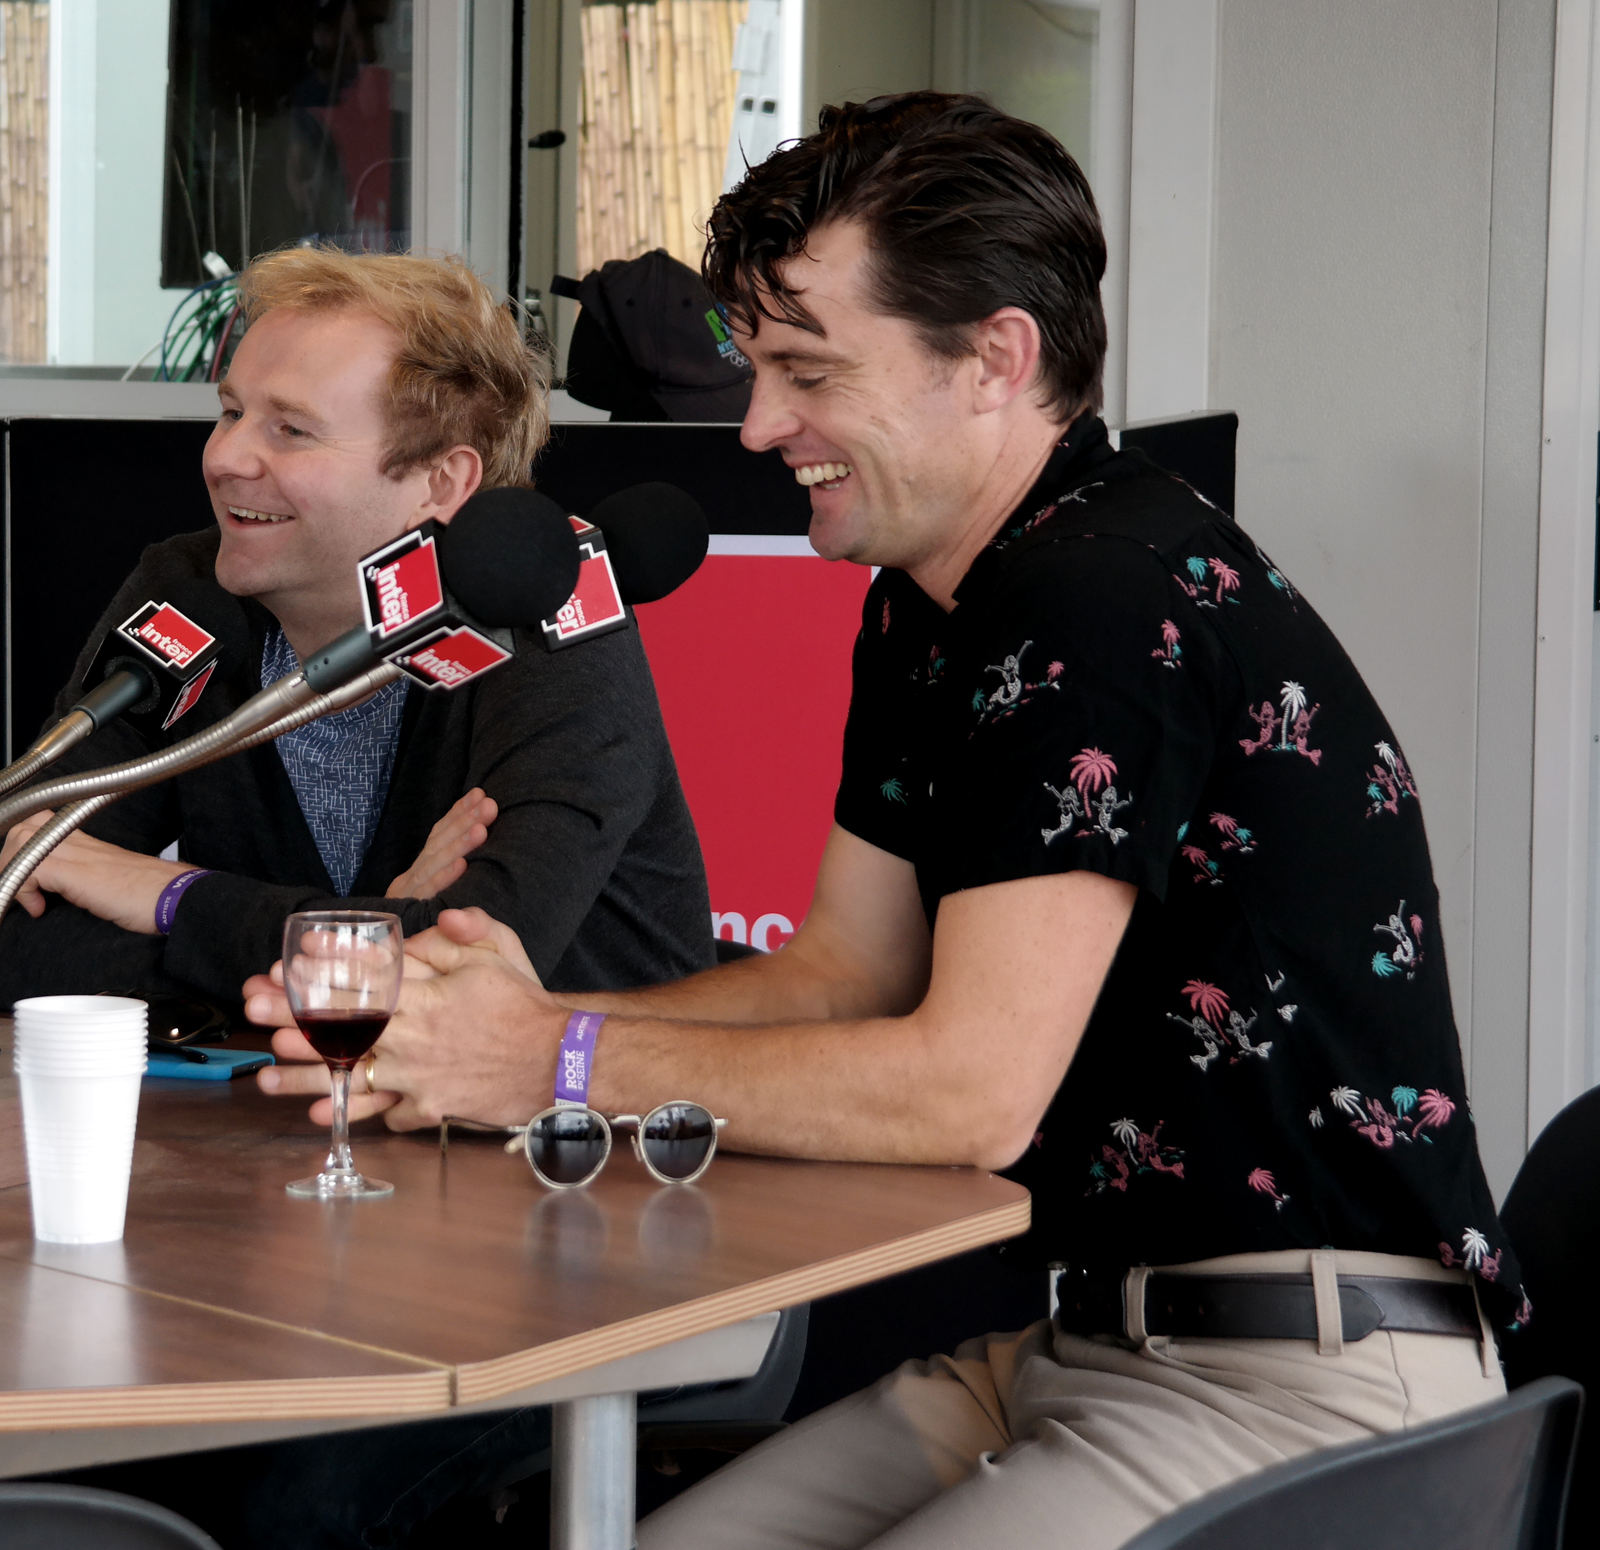 Bob Hardy and Nick McCarthy smile from Franz Ferdinand music band interview Rock en Seine 2015 festival concert live photo by united states of paris blog